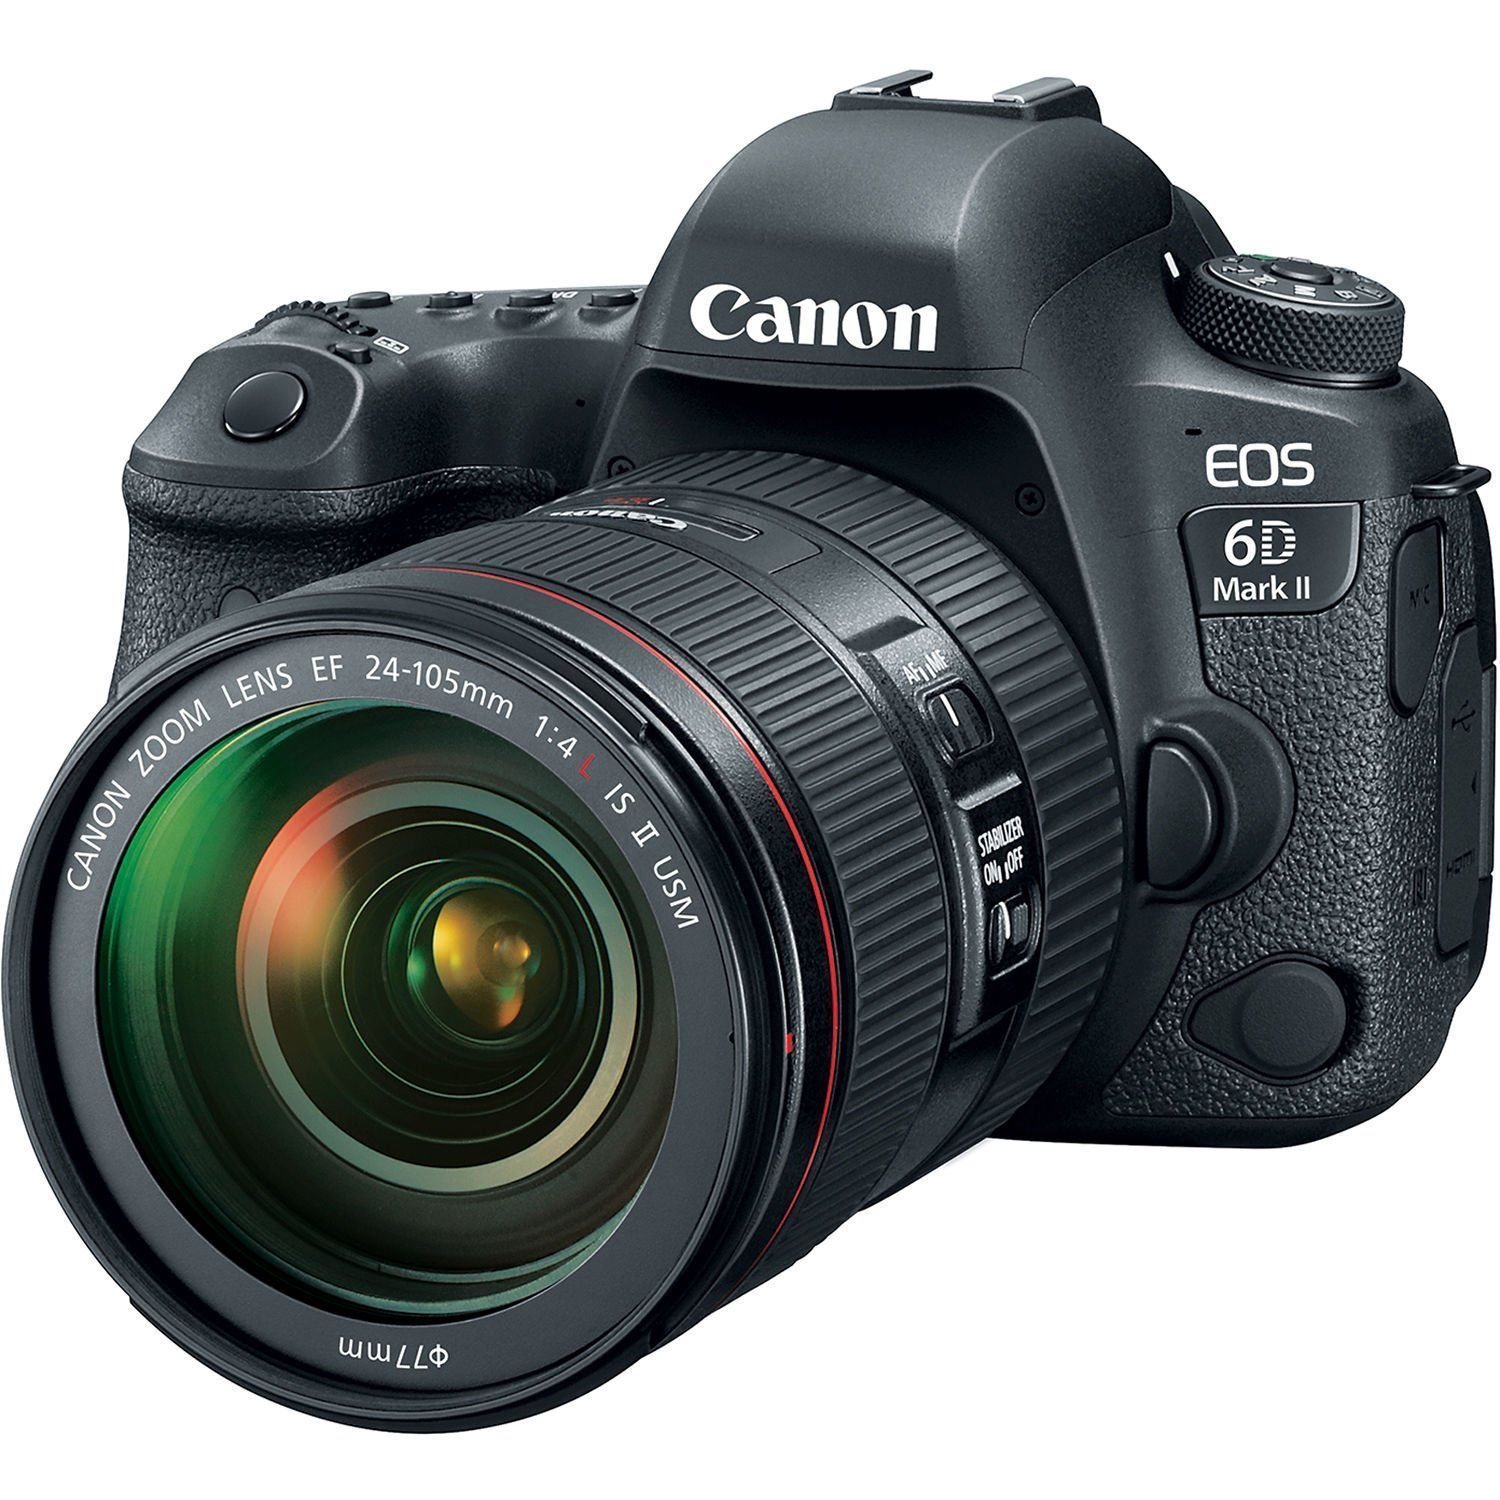 Canon Eos 6d Mark Ii Dslr Camera With 24105mm F 4 Lens 1897c009 Canon Ef 50mm F 1 8 Stm Lens 0570c002 49mm 3 Piece Filte Canon Dslr Camera Canon Dslr Canon 5ds